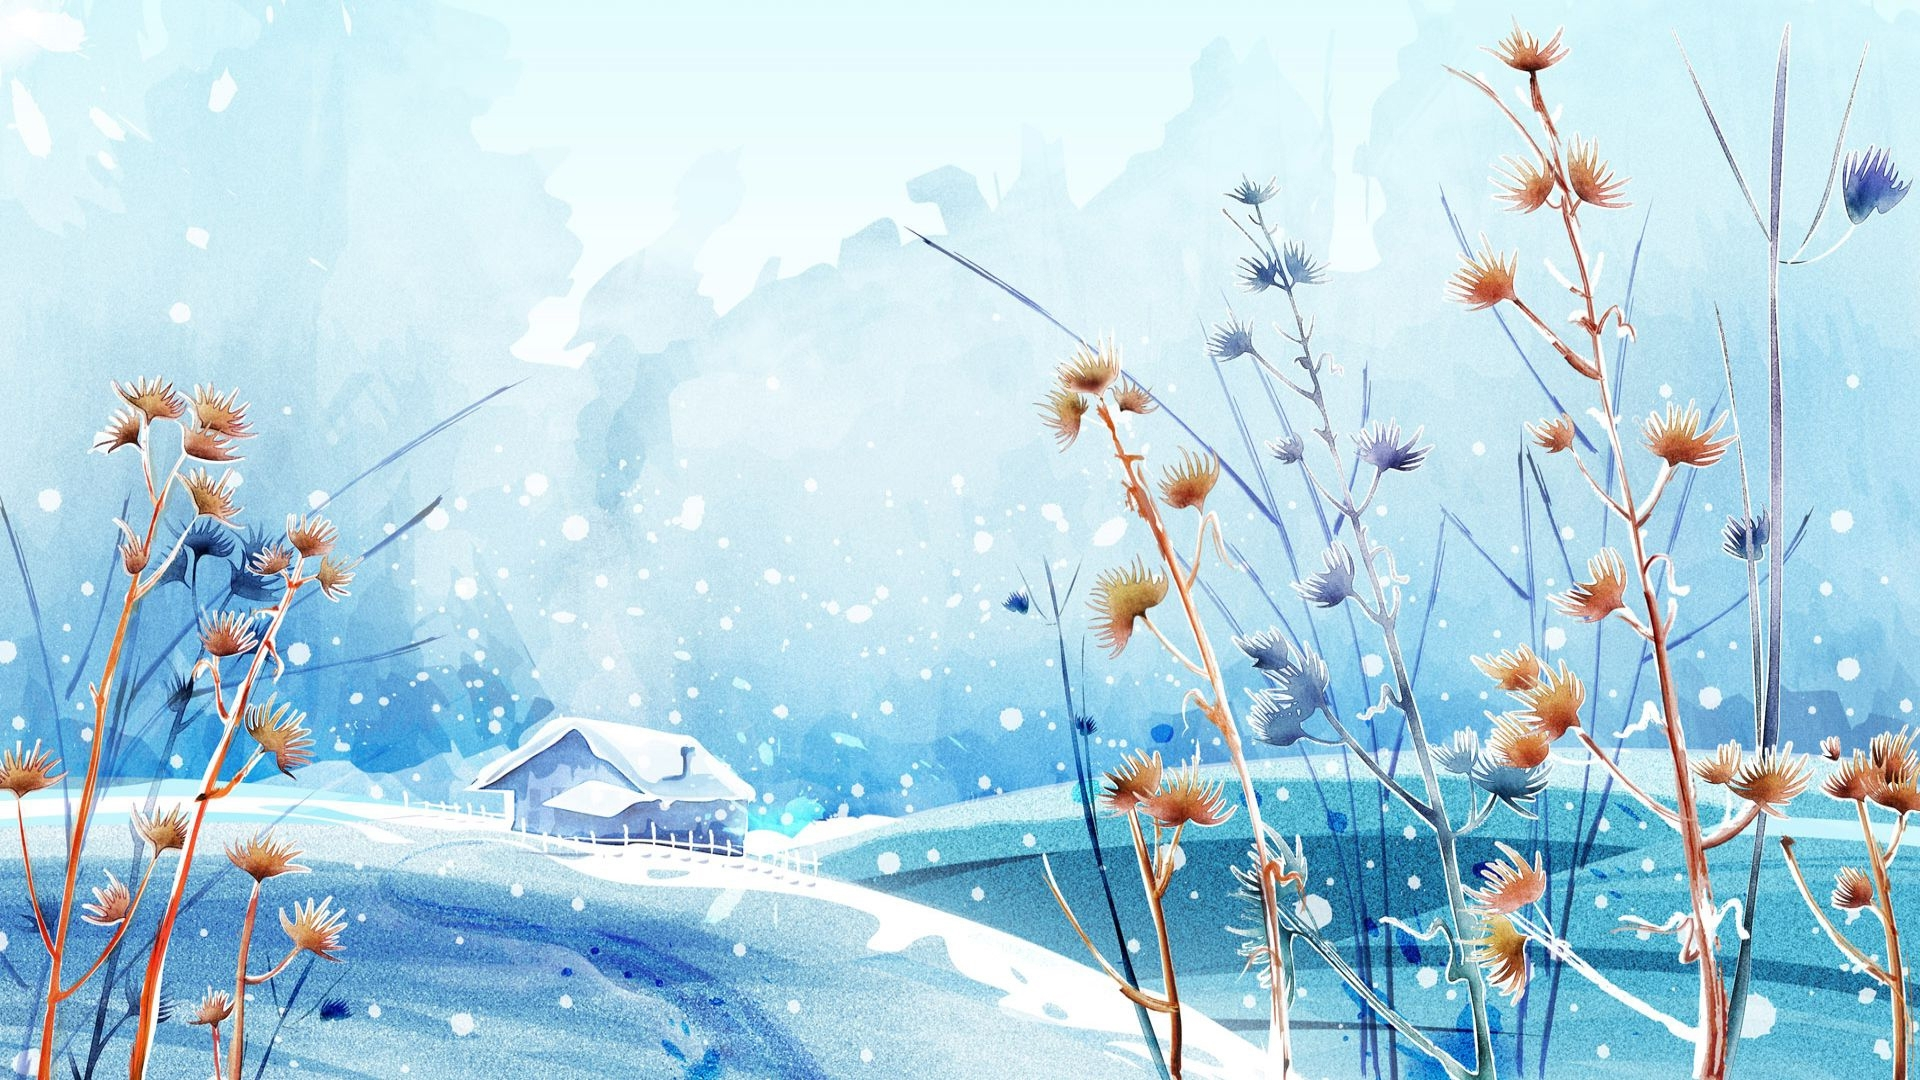 beautiful winter anime pictures | digiatto | hd wallpaper and